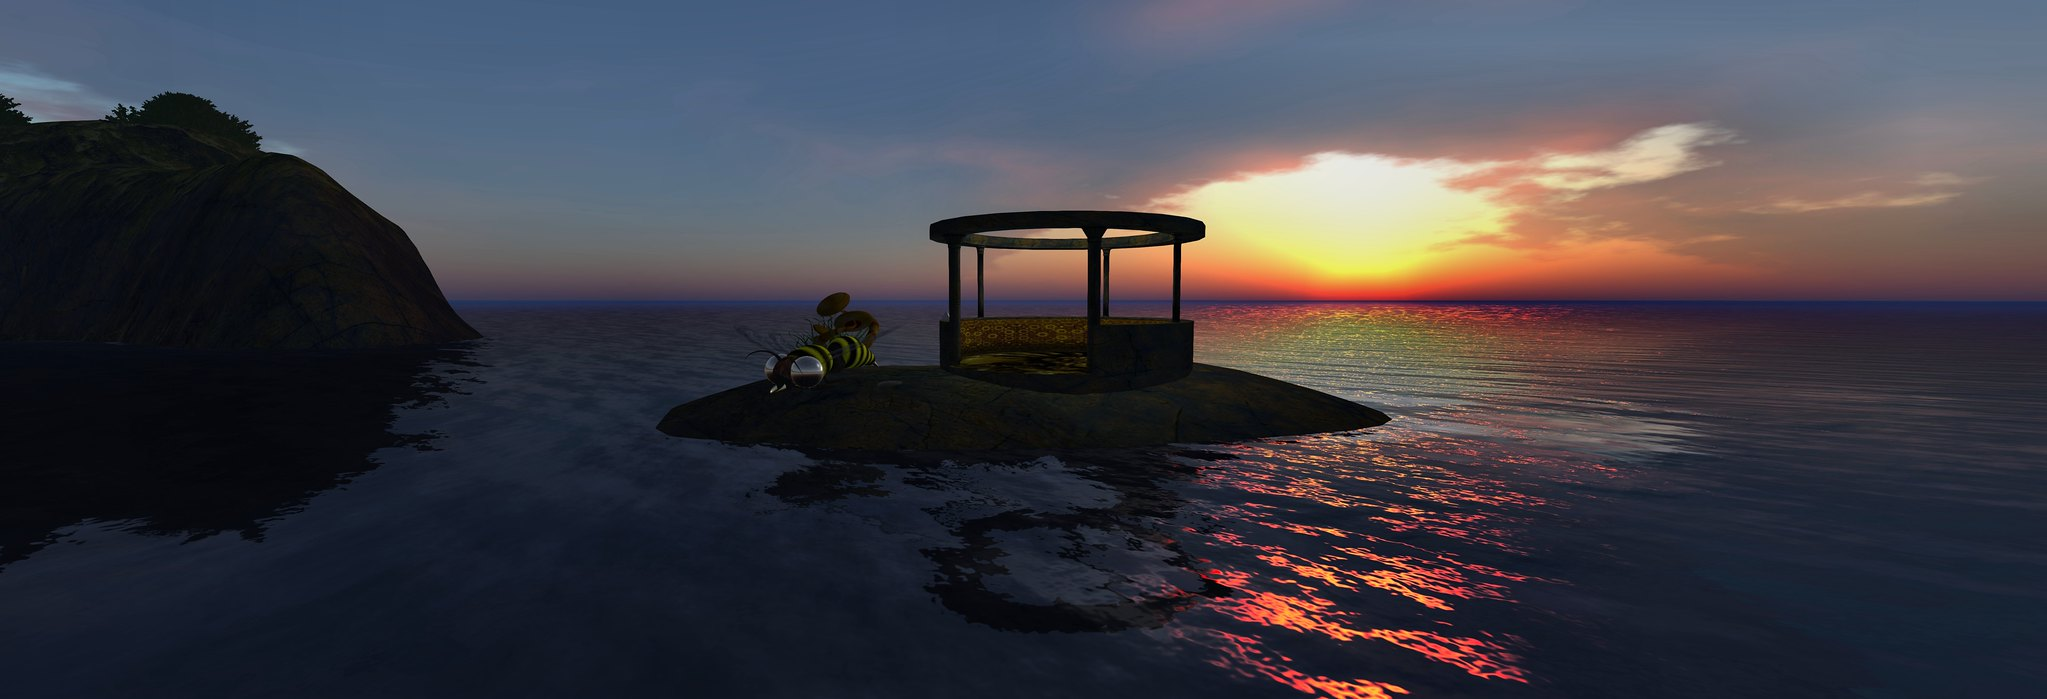 Sunrise at Svarga's landing point and tour station